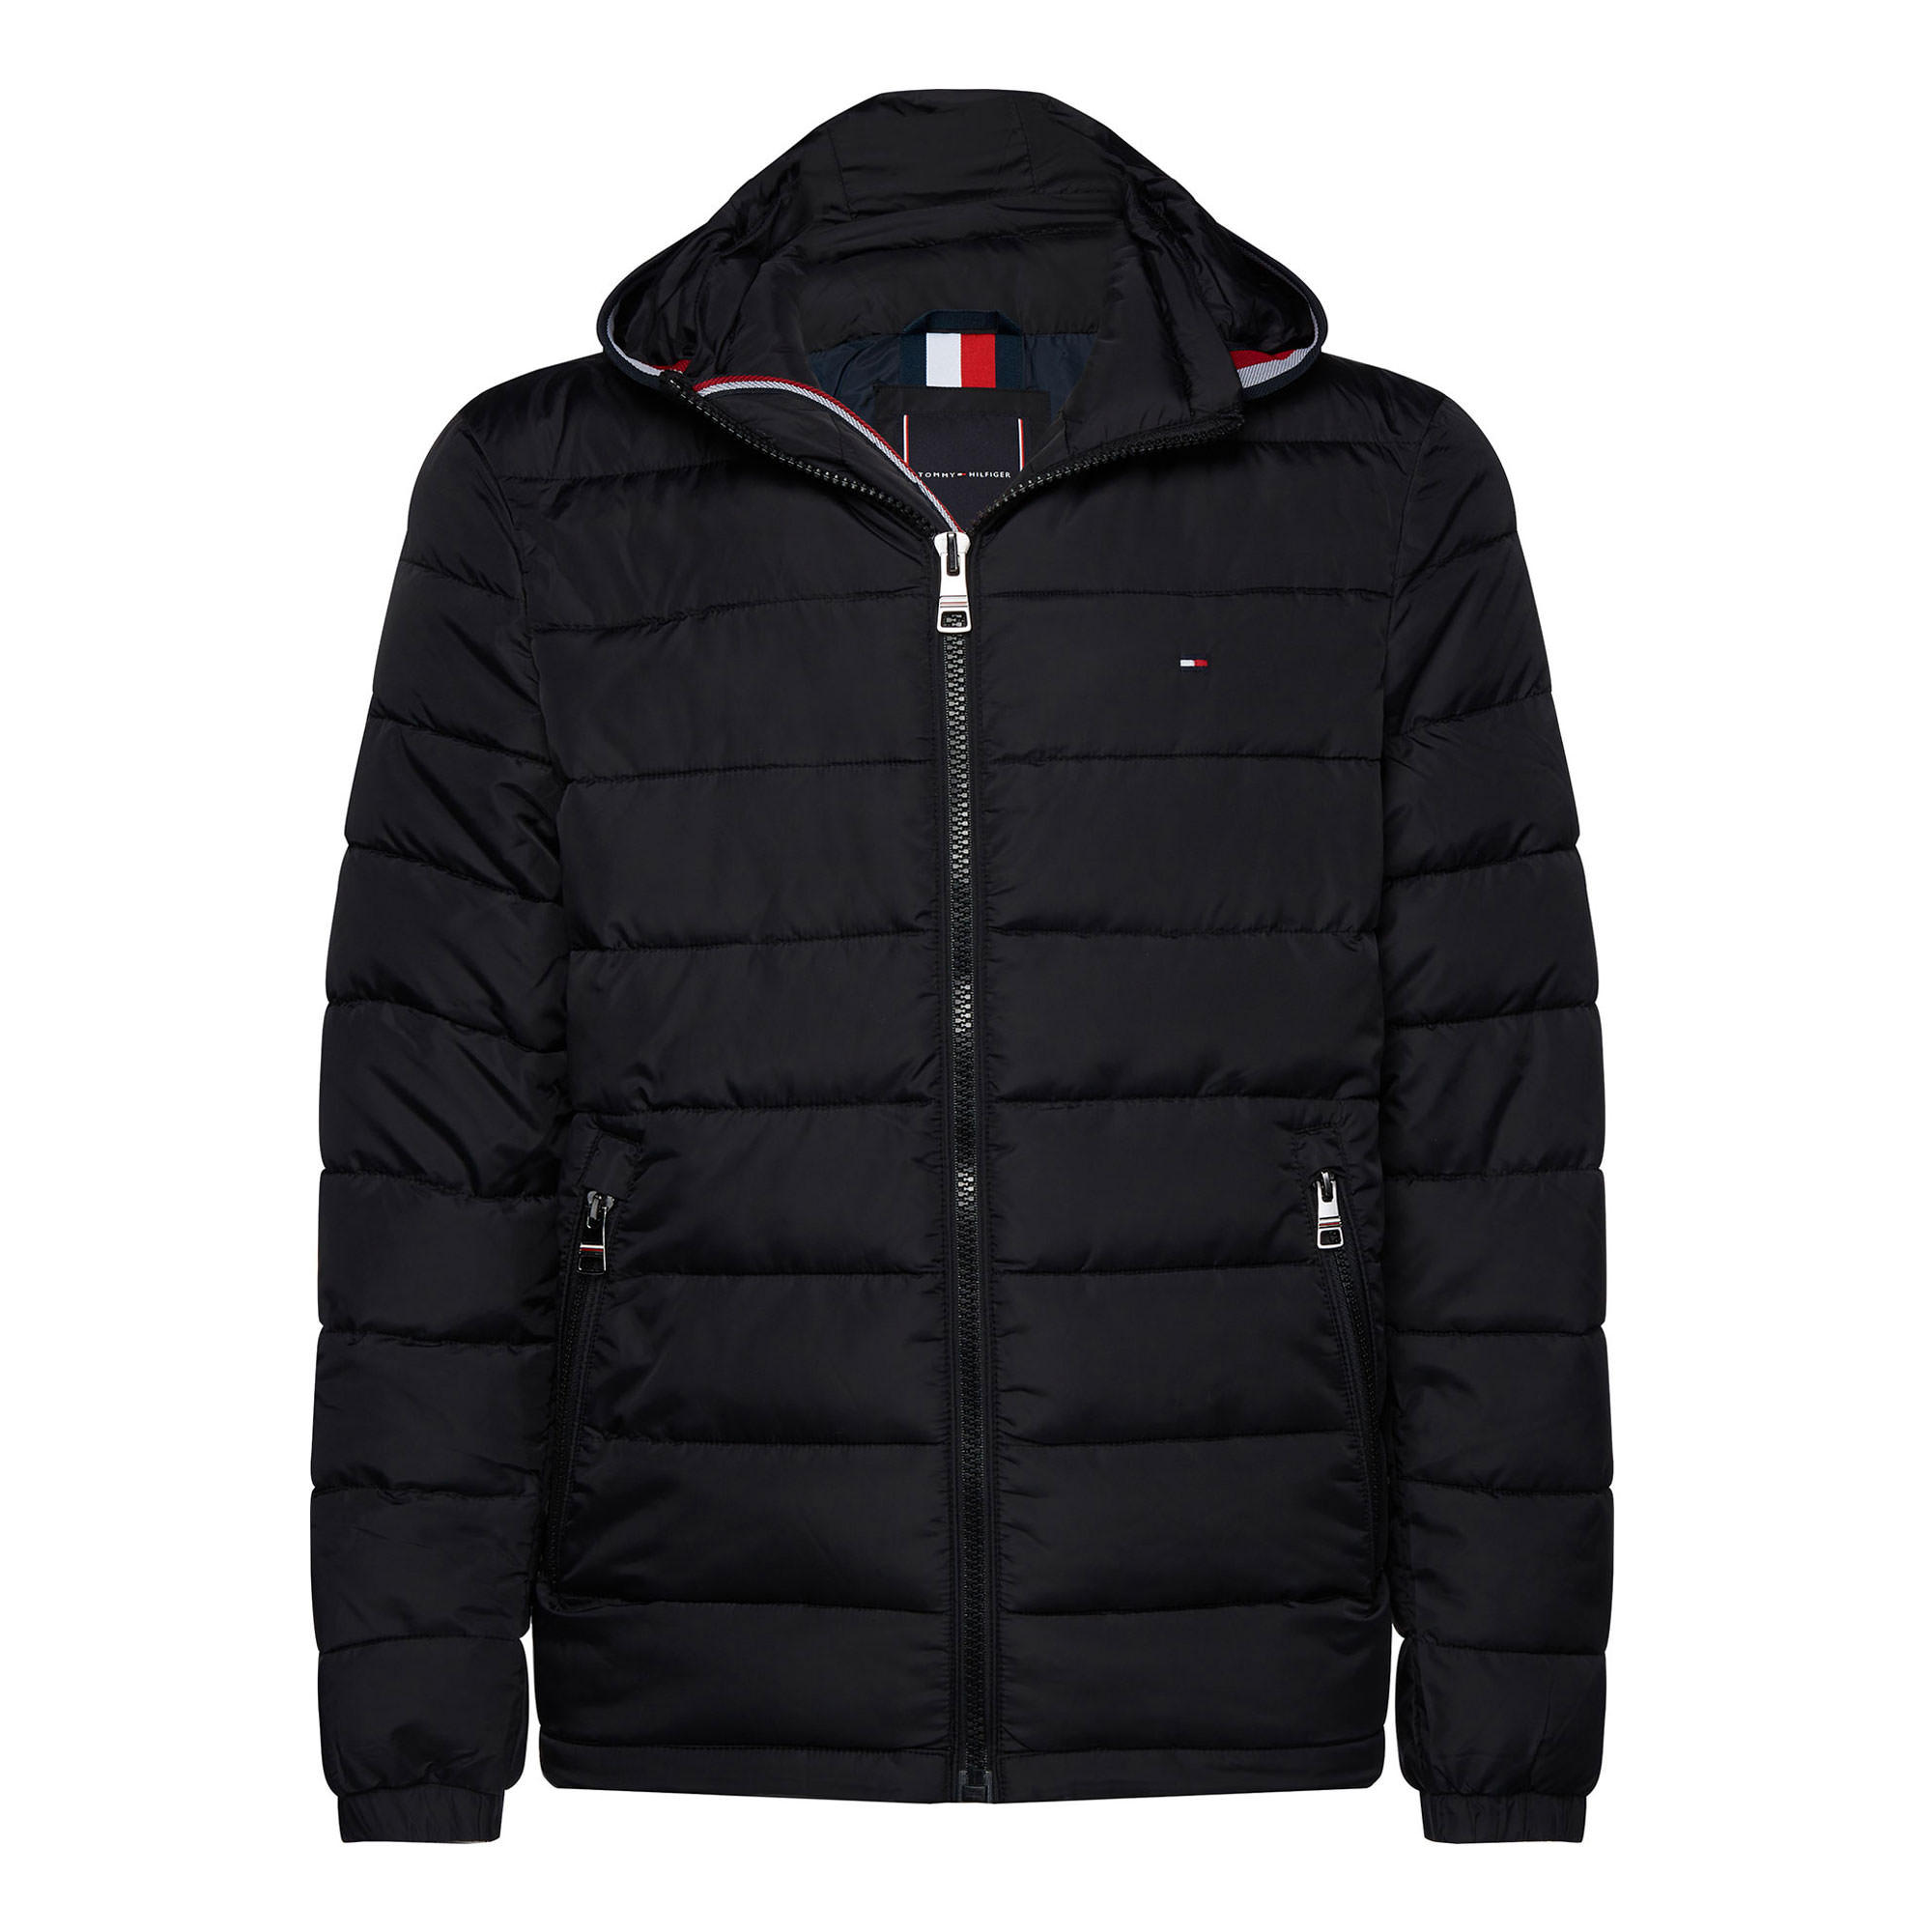 143408871: Quilted Hooded Jacket